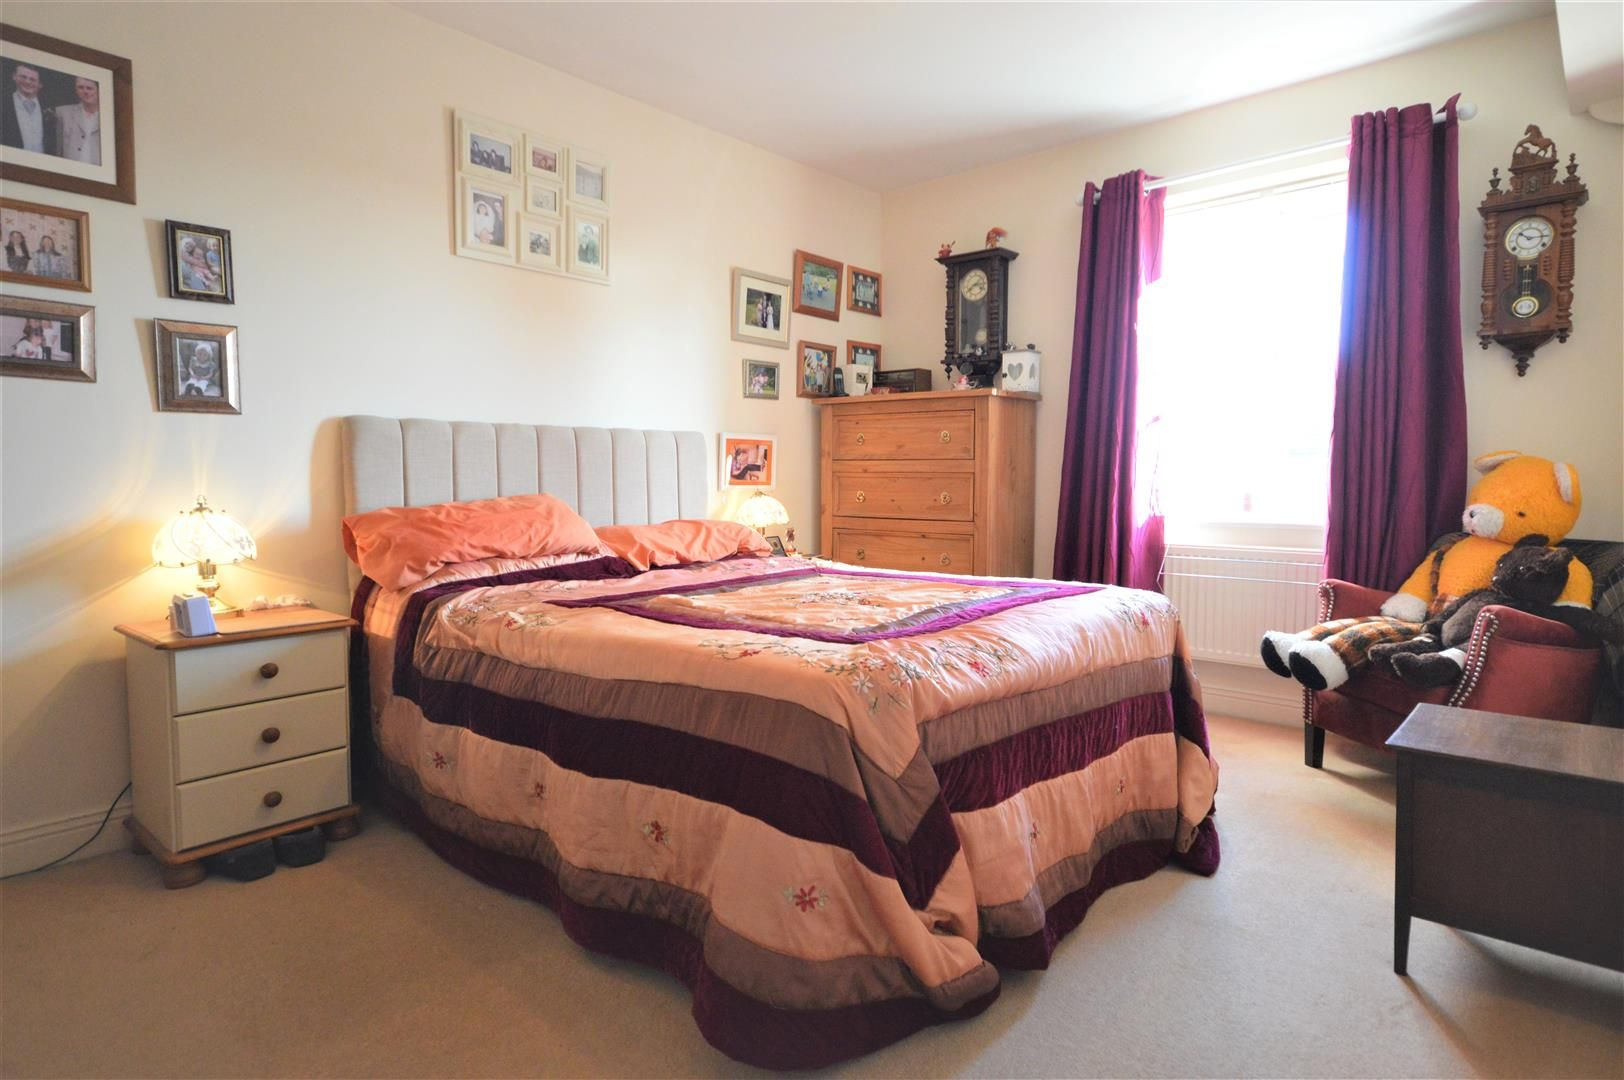 4 bed semi-detached for sale in Leominster 5